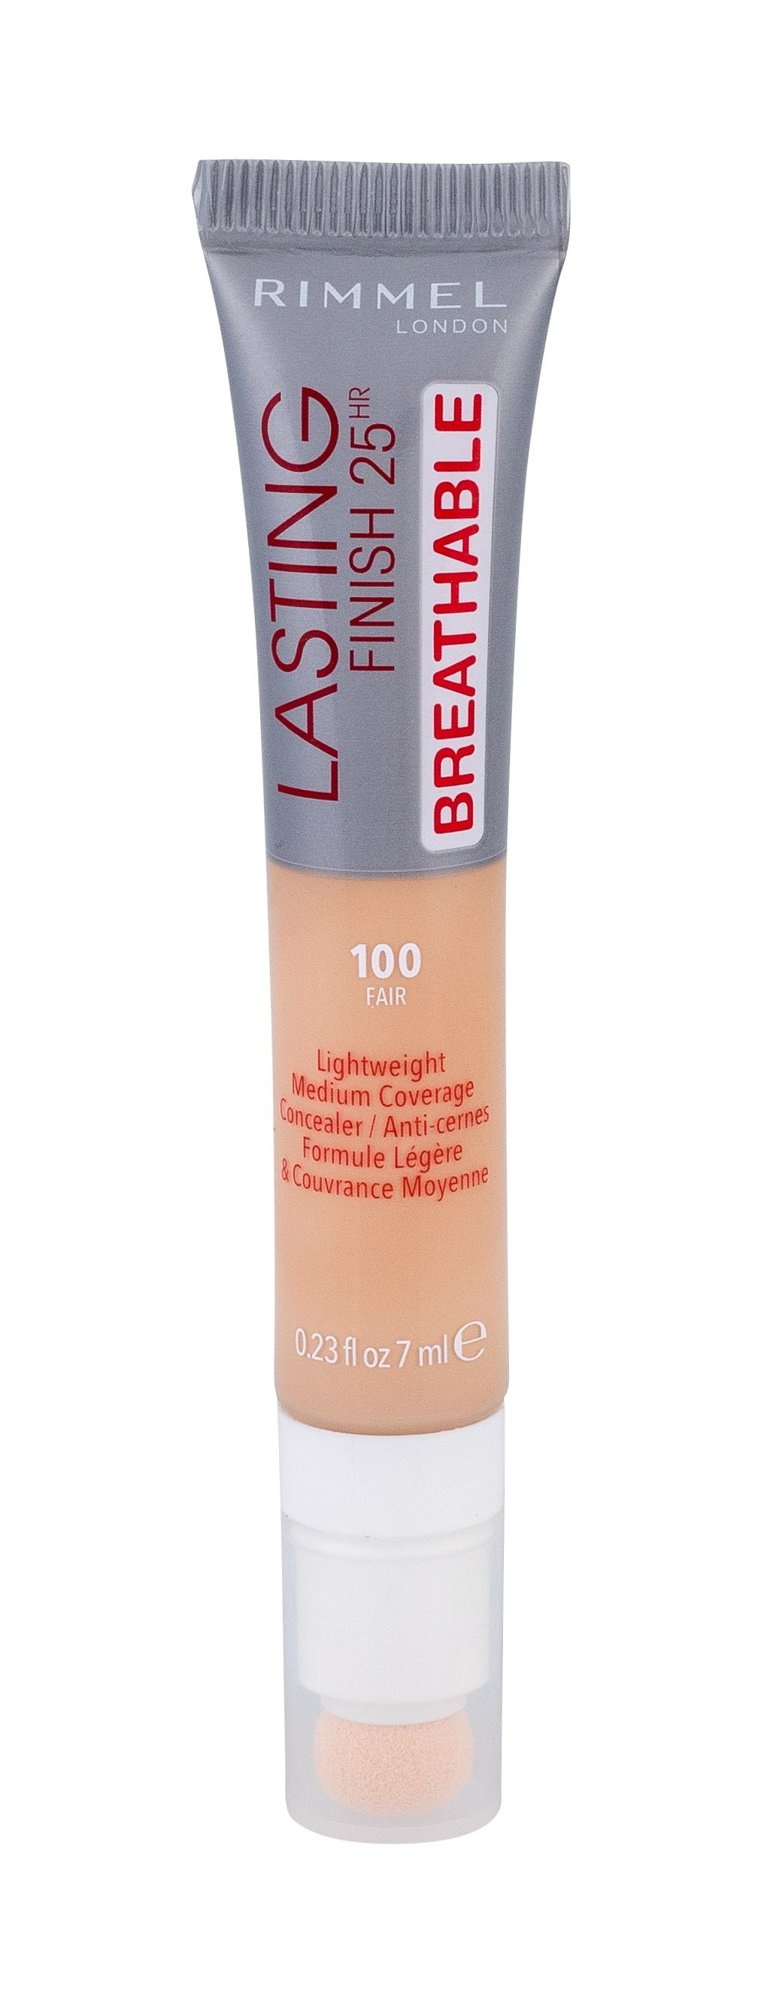 Rimmel London Lasting Finish Corrector 7ml 100 Fair